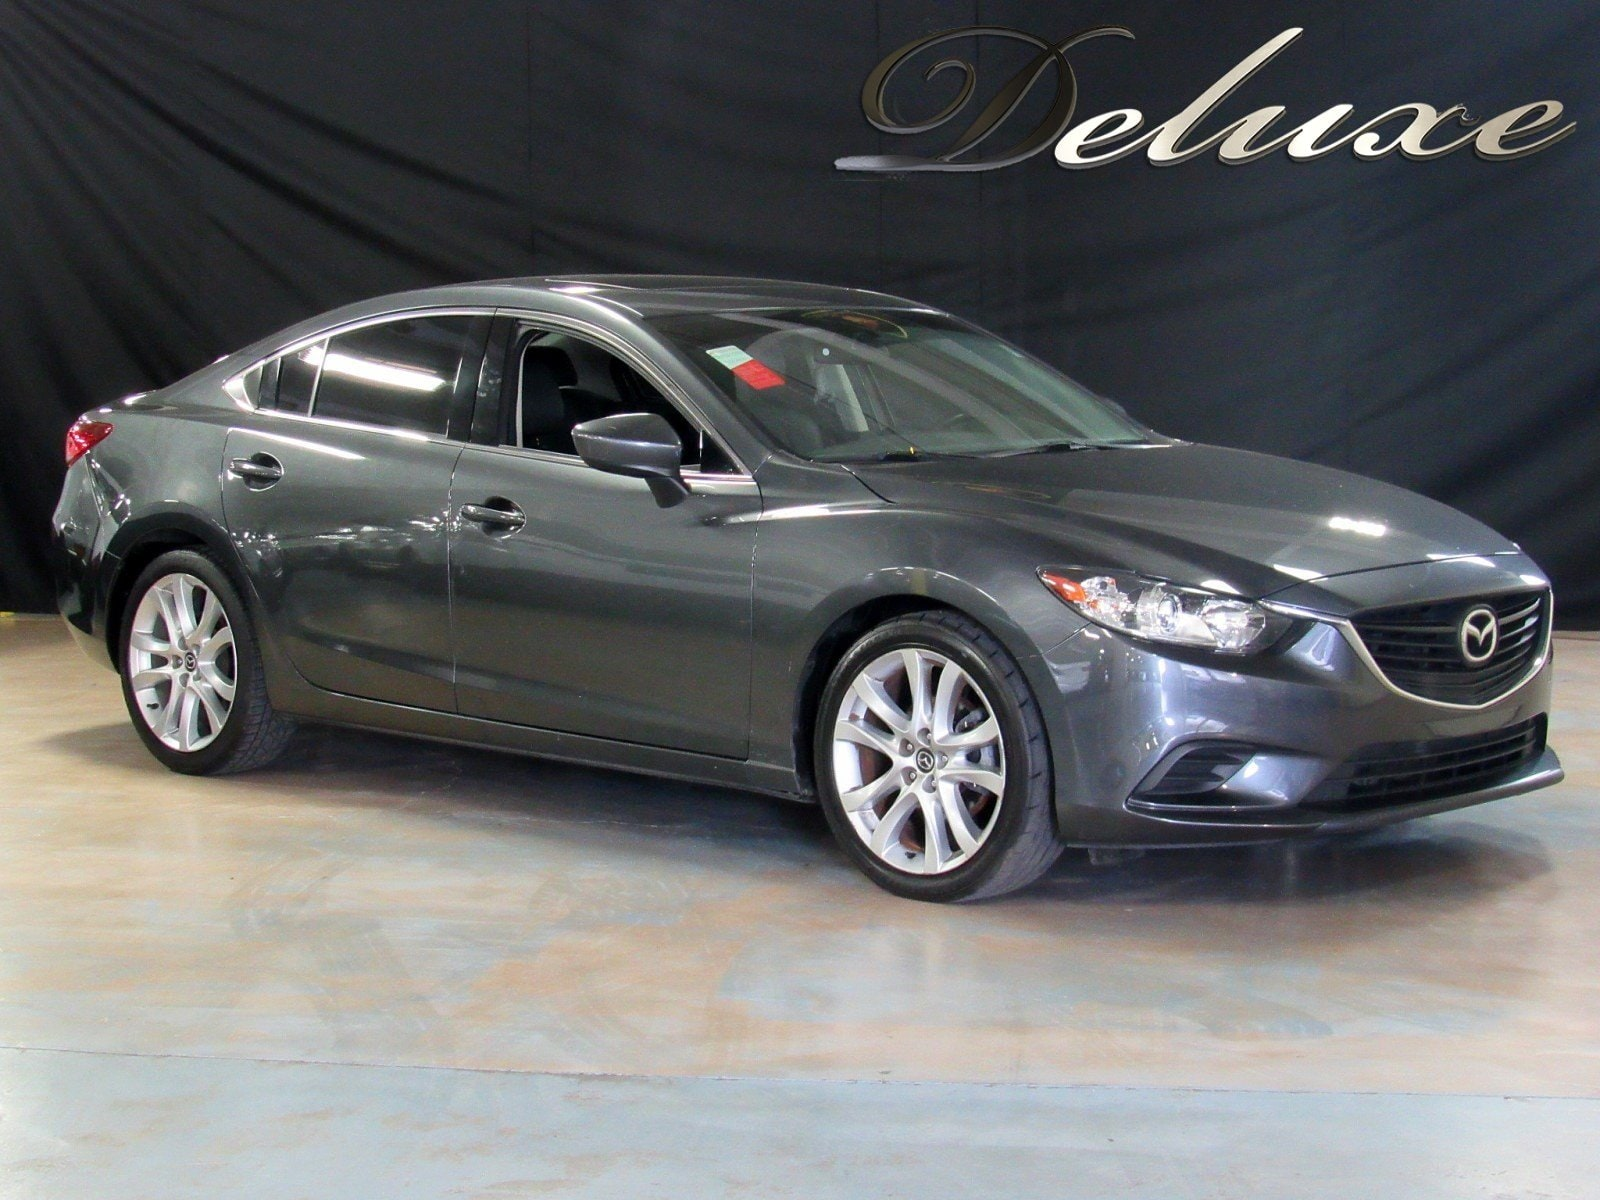 2015 Mazda Mazda6 i Touring Sedan, Remote Keyless Entry, Rear-View Camera, Touch Screen Audio, Bluetooth Technology, Bose Premium Sound System, Front Leather Bucket Seats, Power Sunroof, HID Headlights, 17-Inch Alloy Wheels,